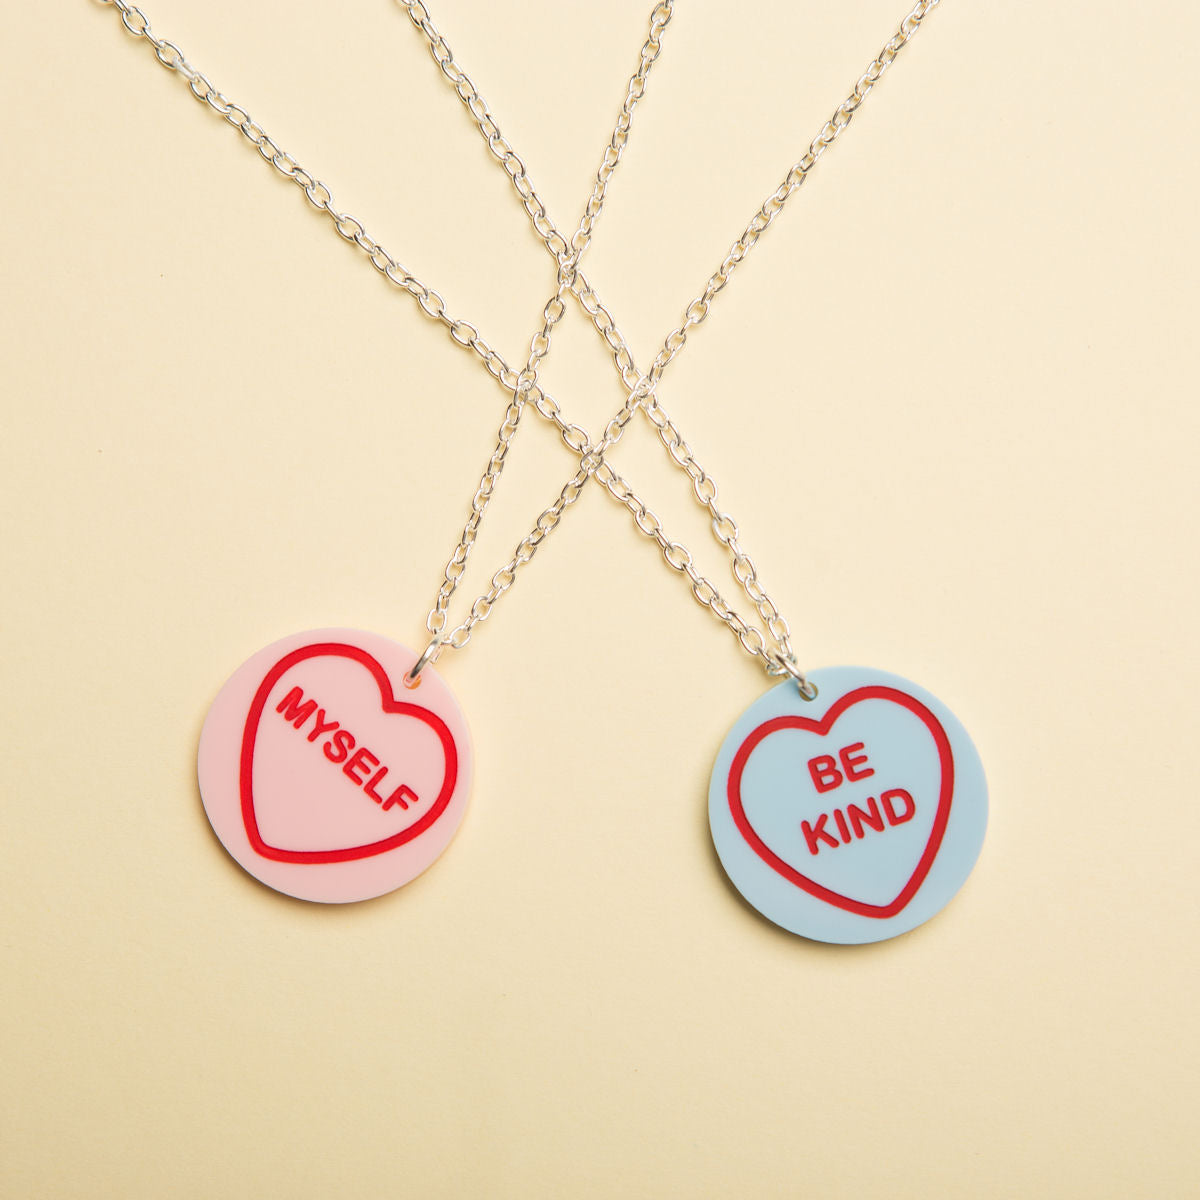 Sugar & Vice Self Love Hearts Necklace social media